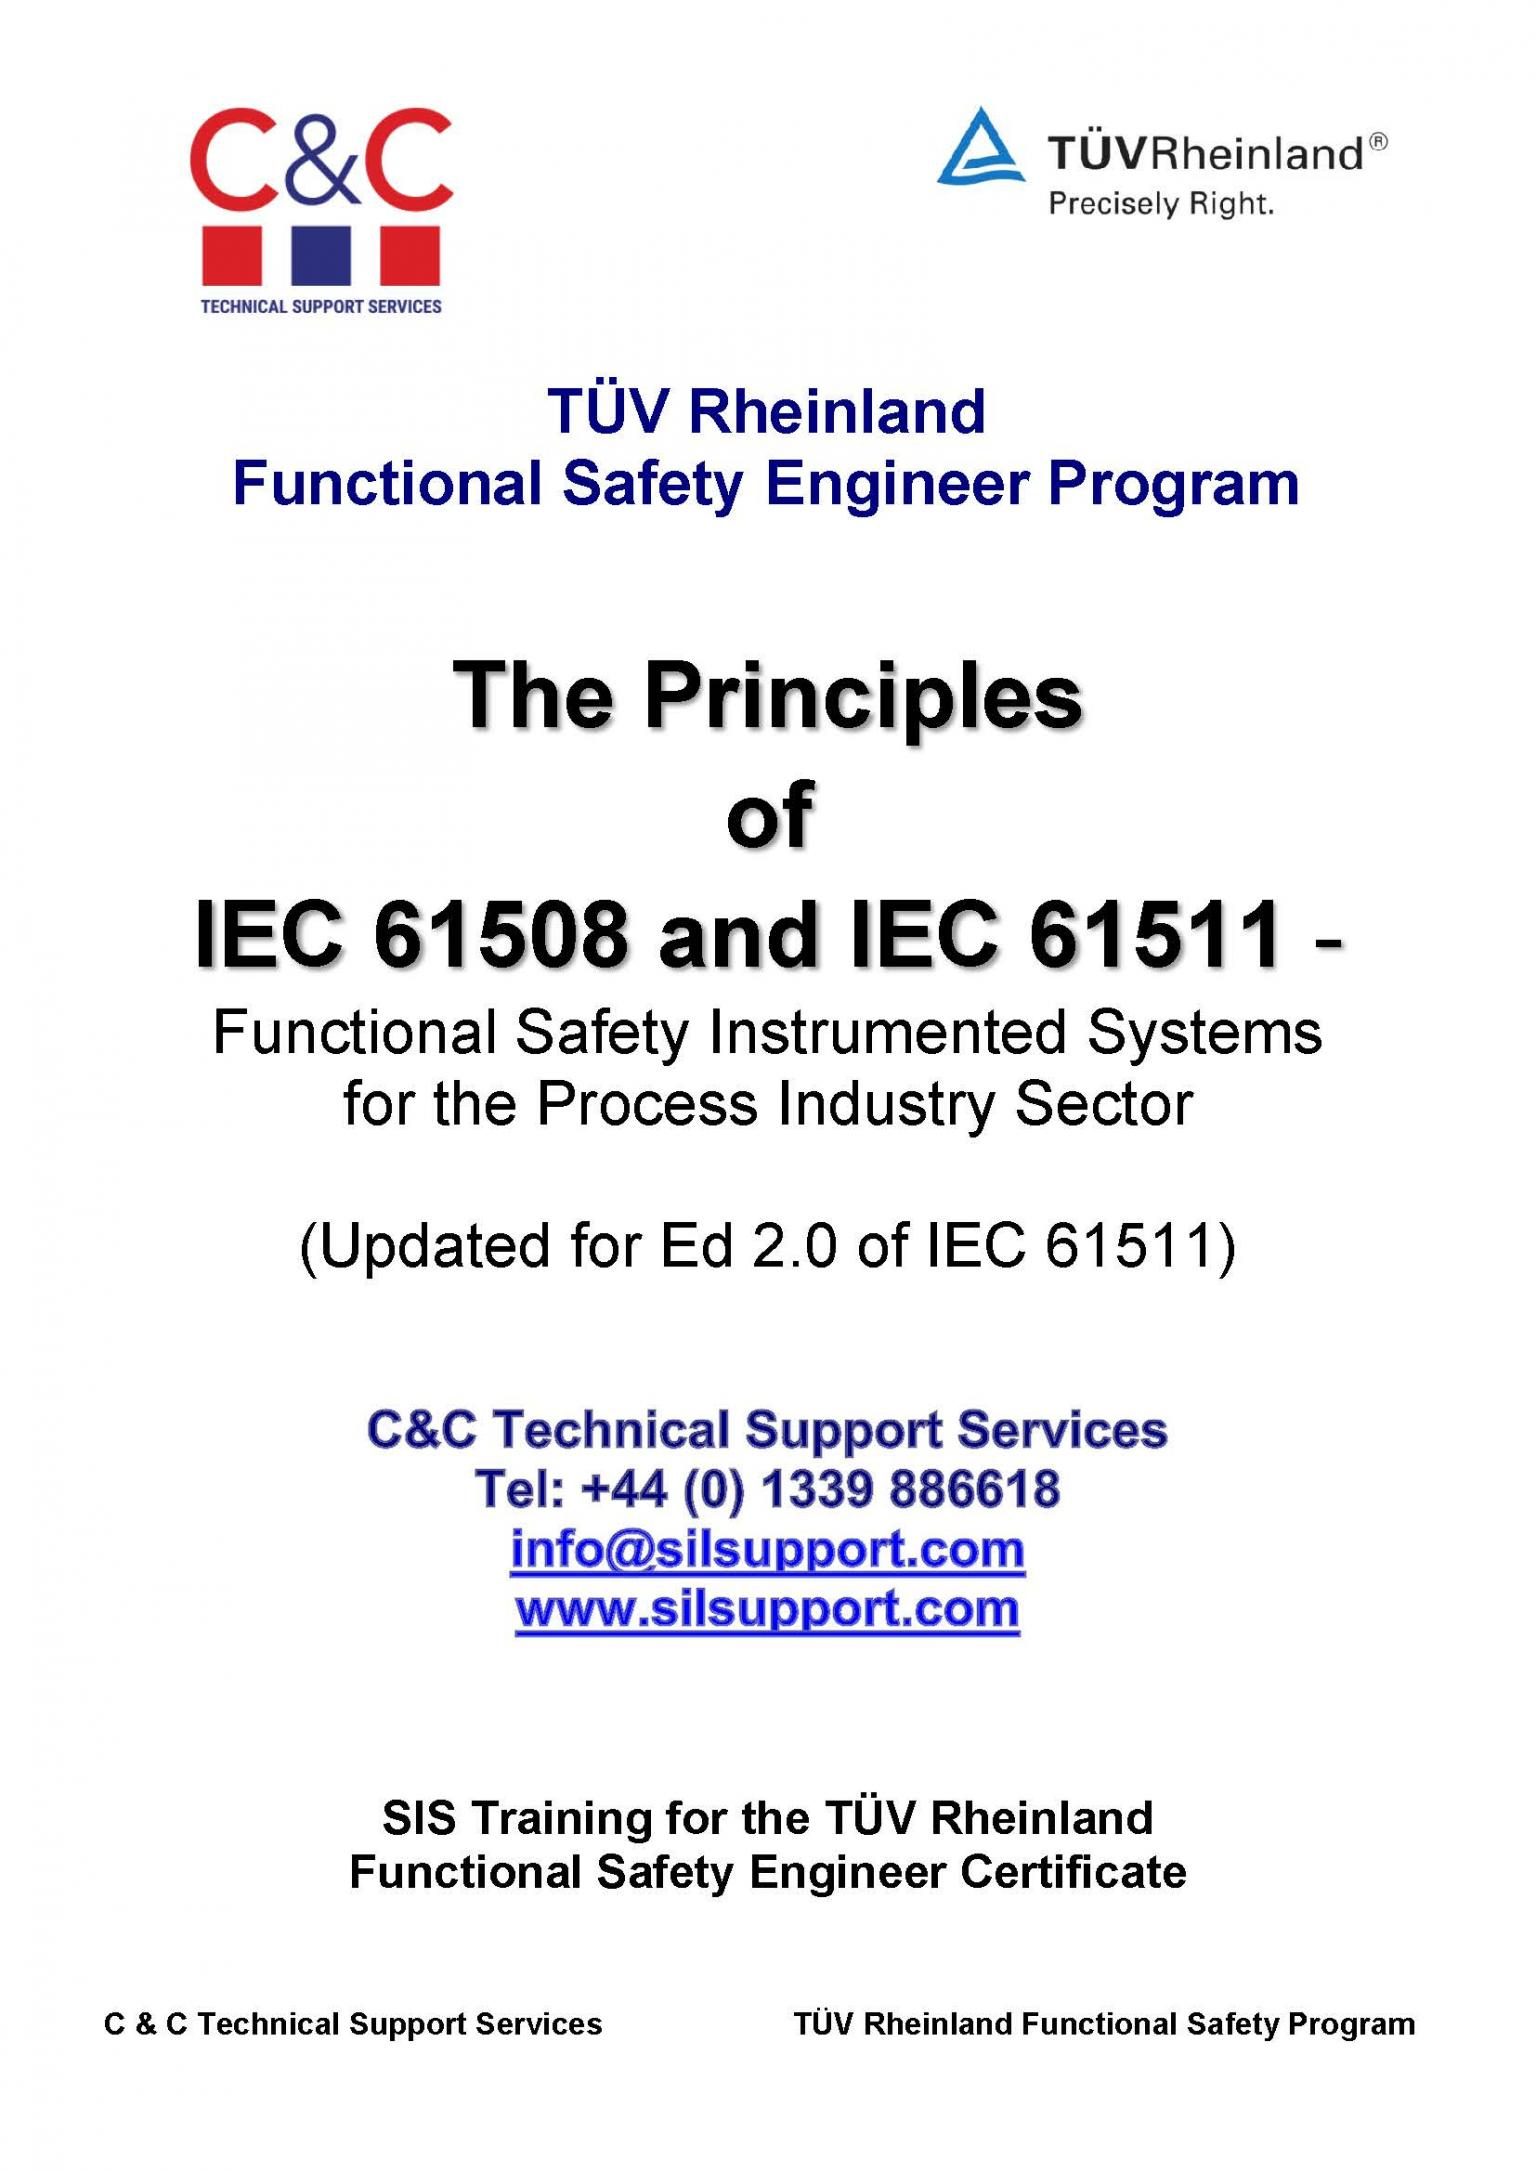 Functional Safety Engineer SIS Training